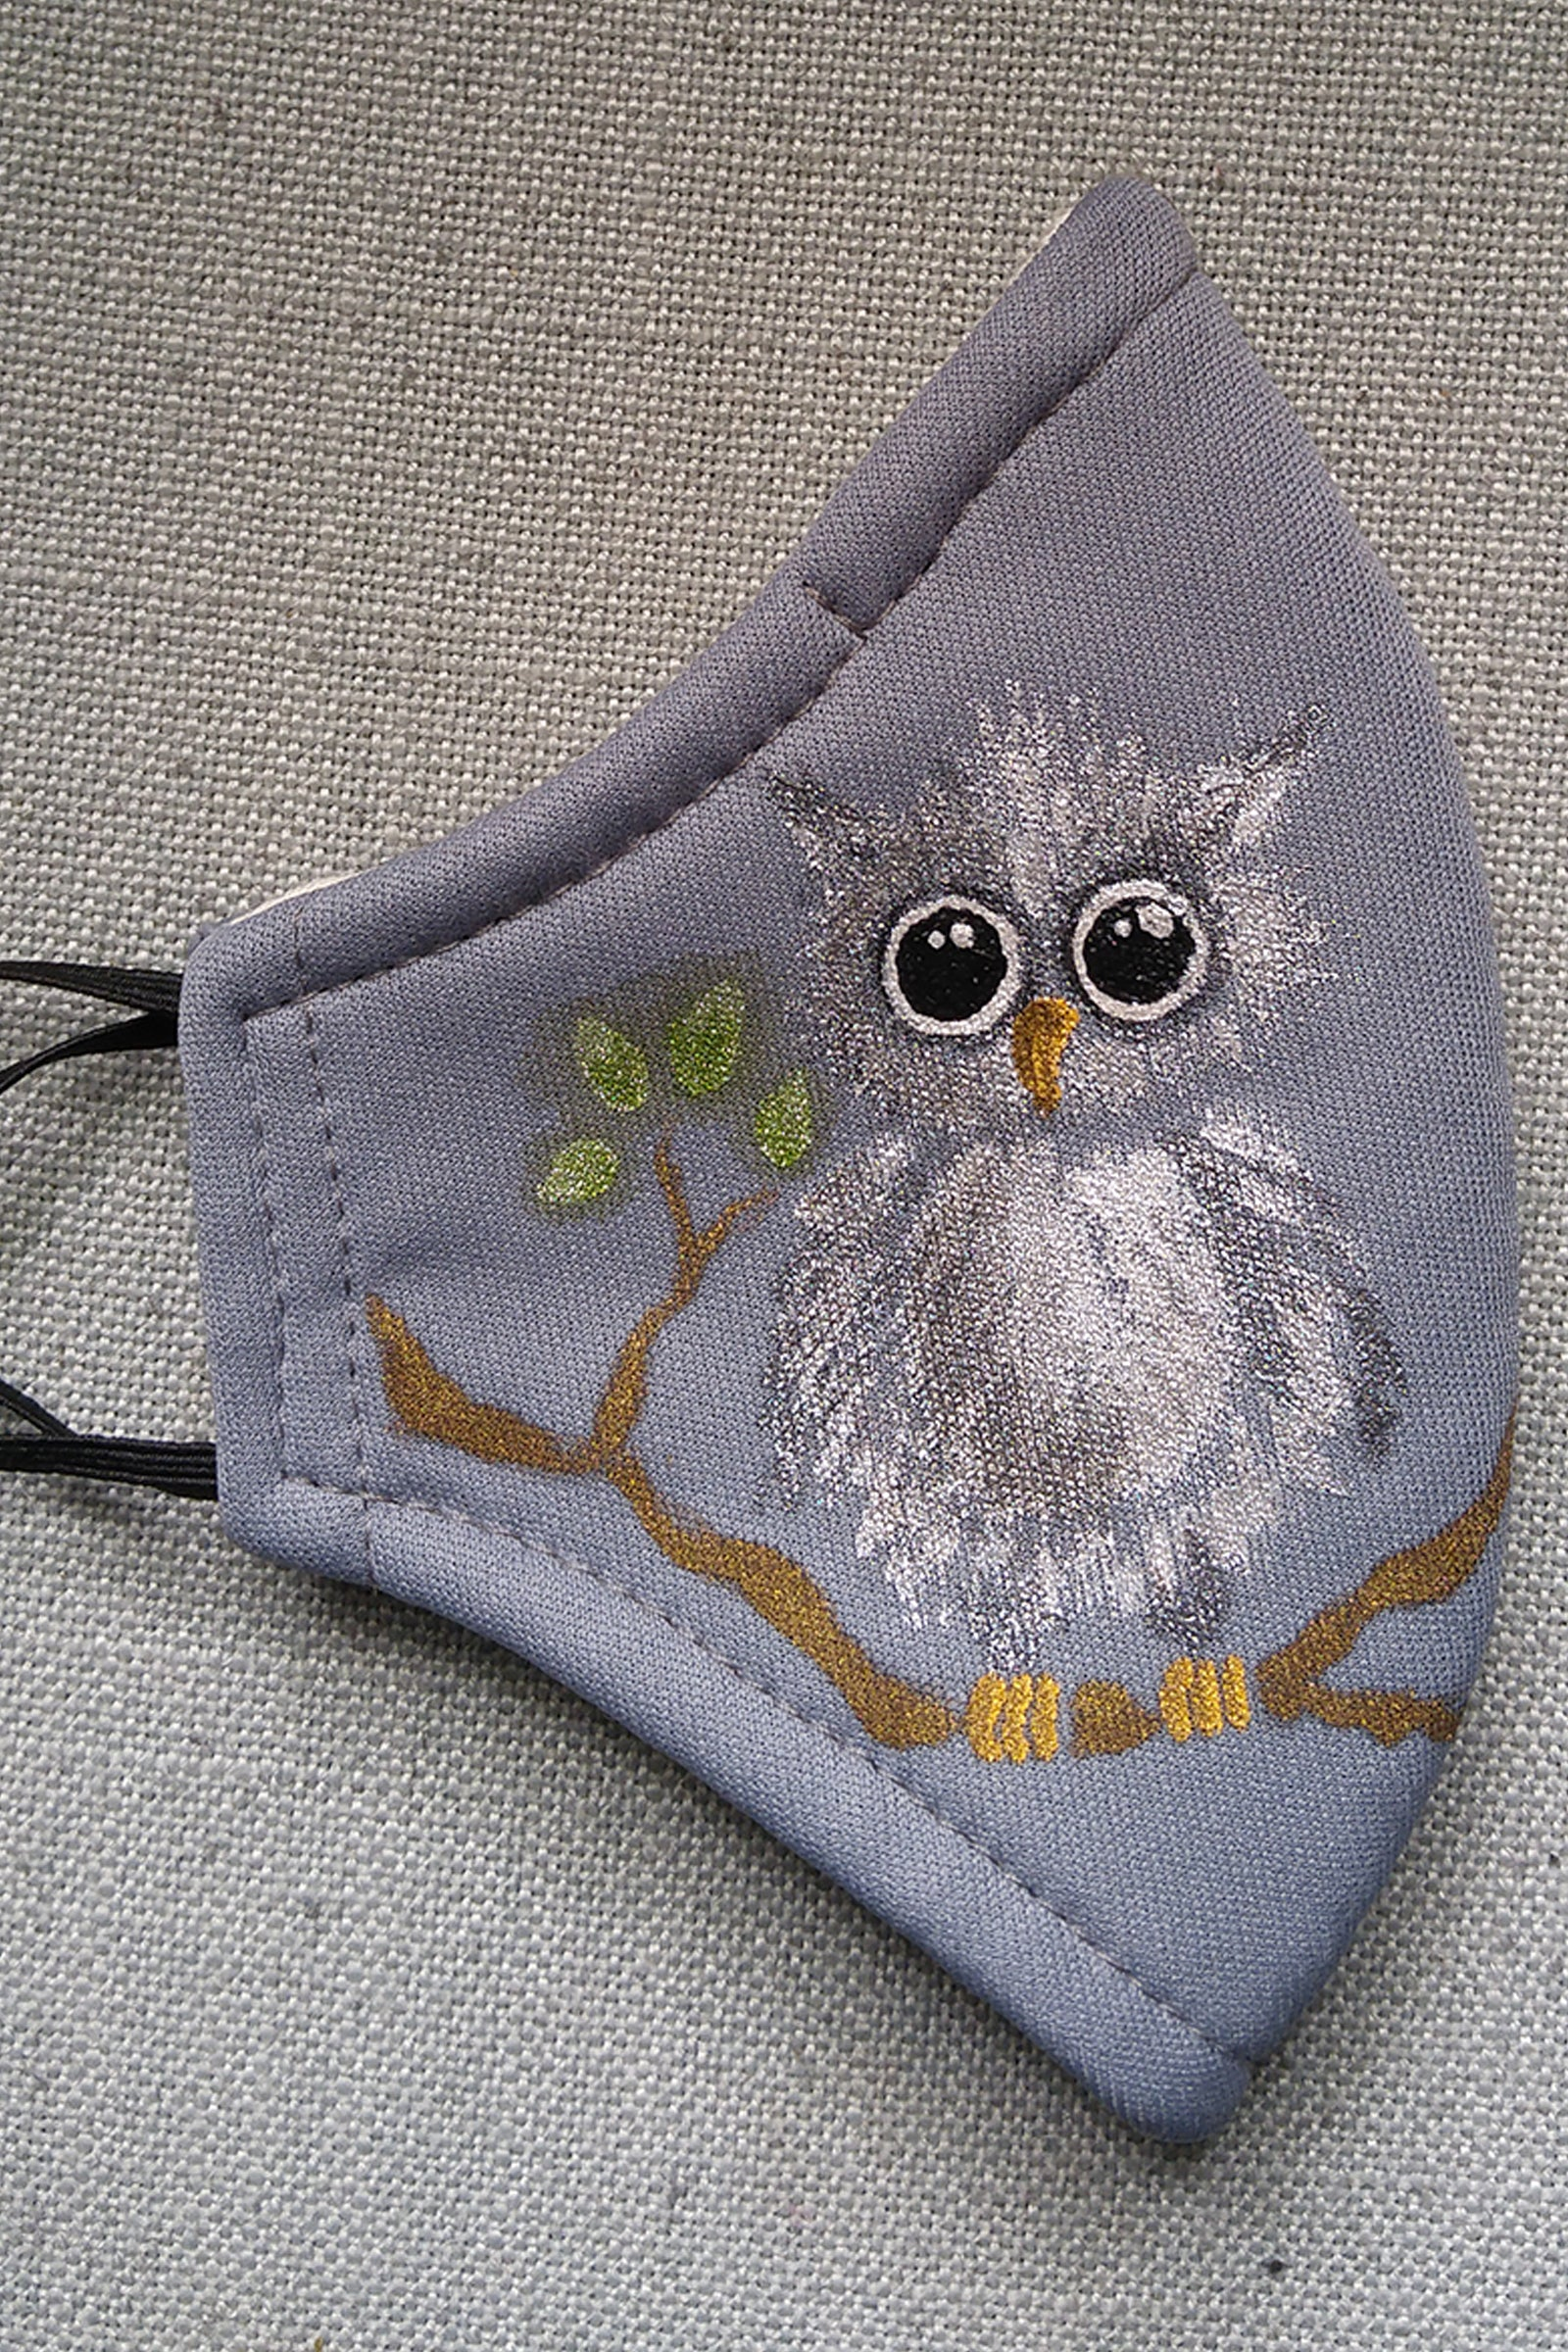 KID SIZE Little Owl, Big Eyes Mask